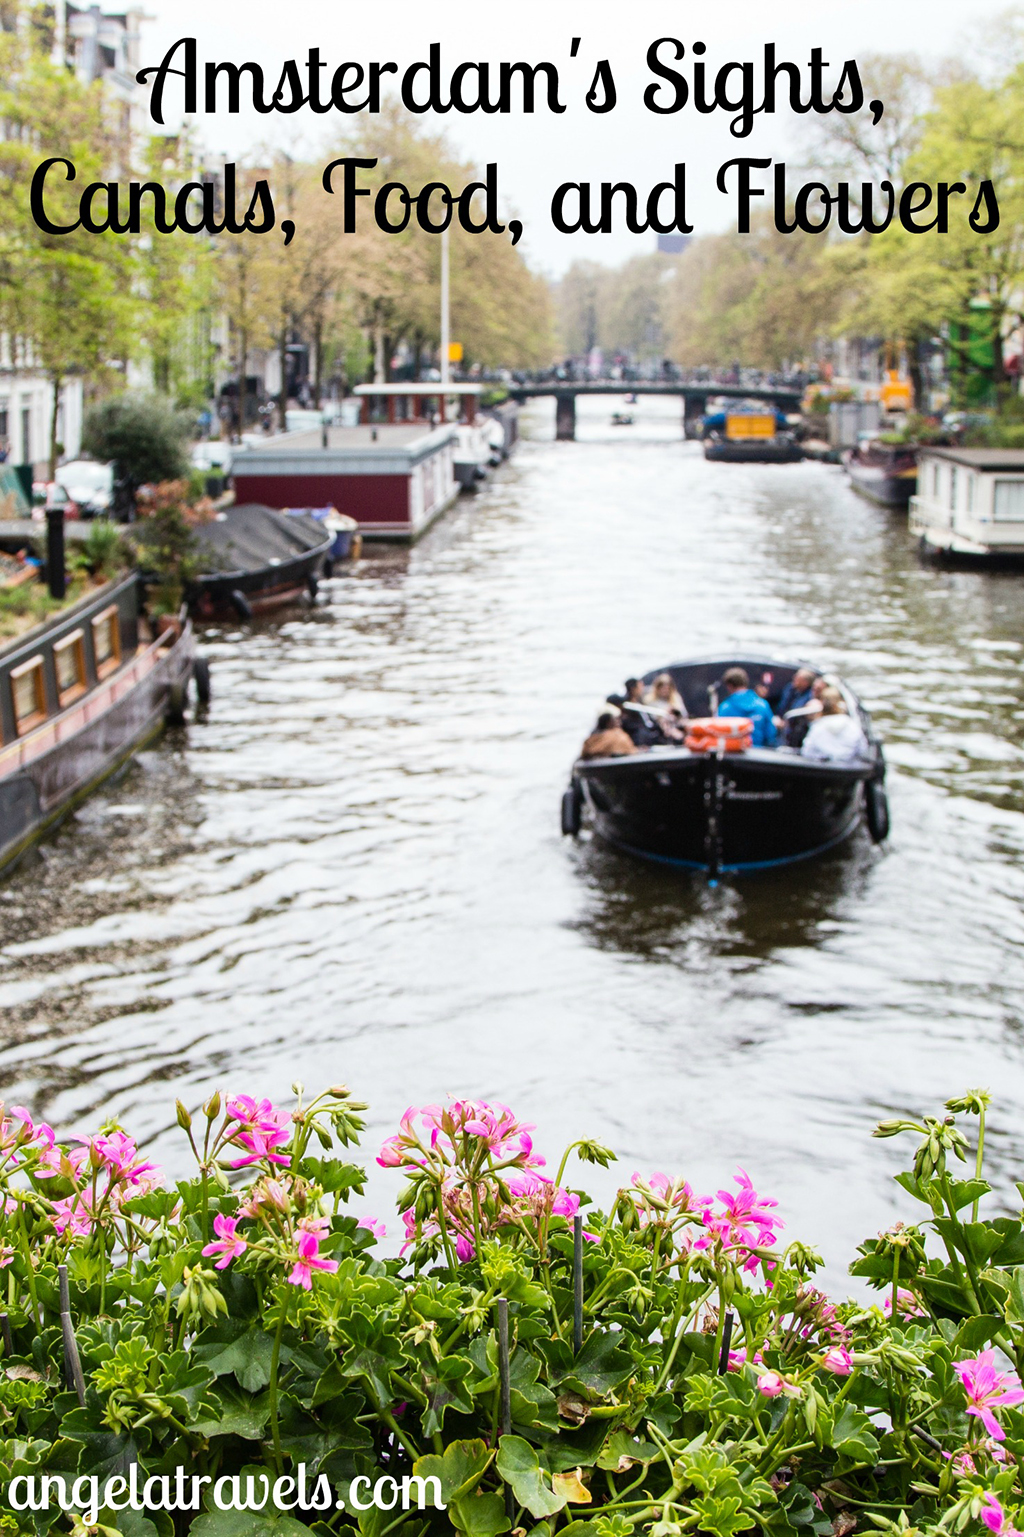 Photo Essay: Amsterdam's Sights, Canals, Food, and Flowers